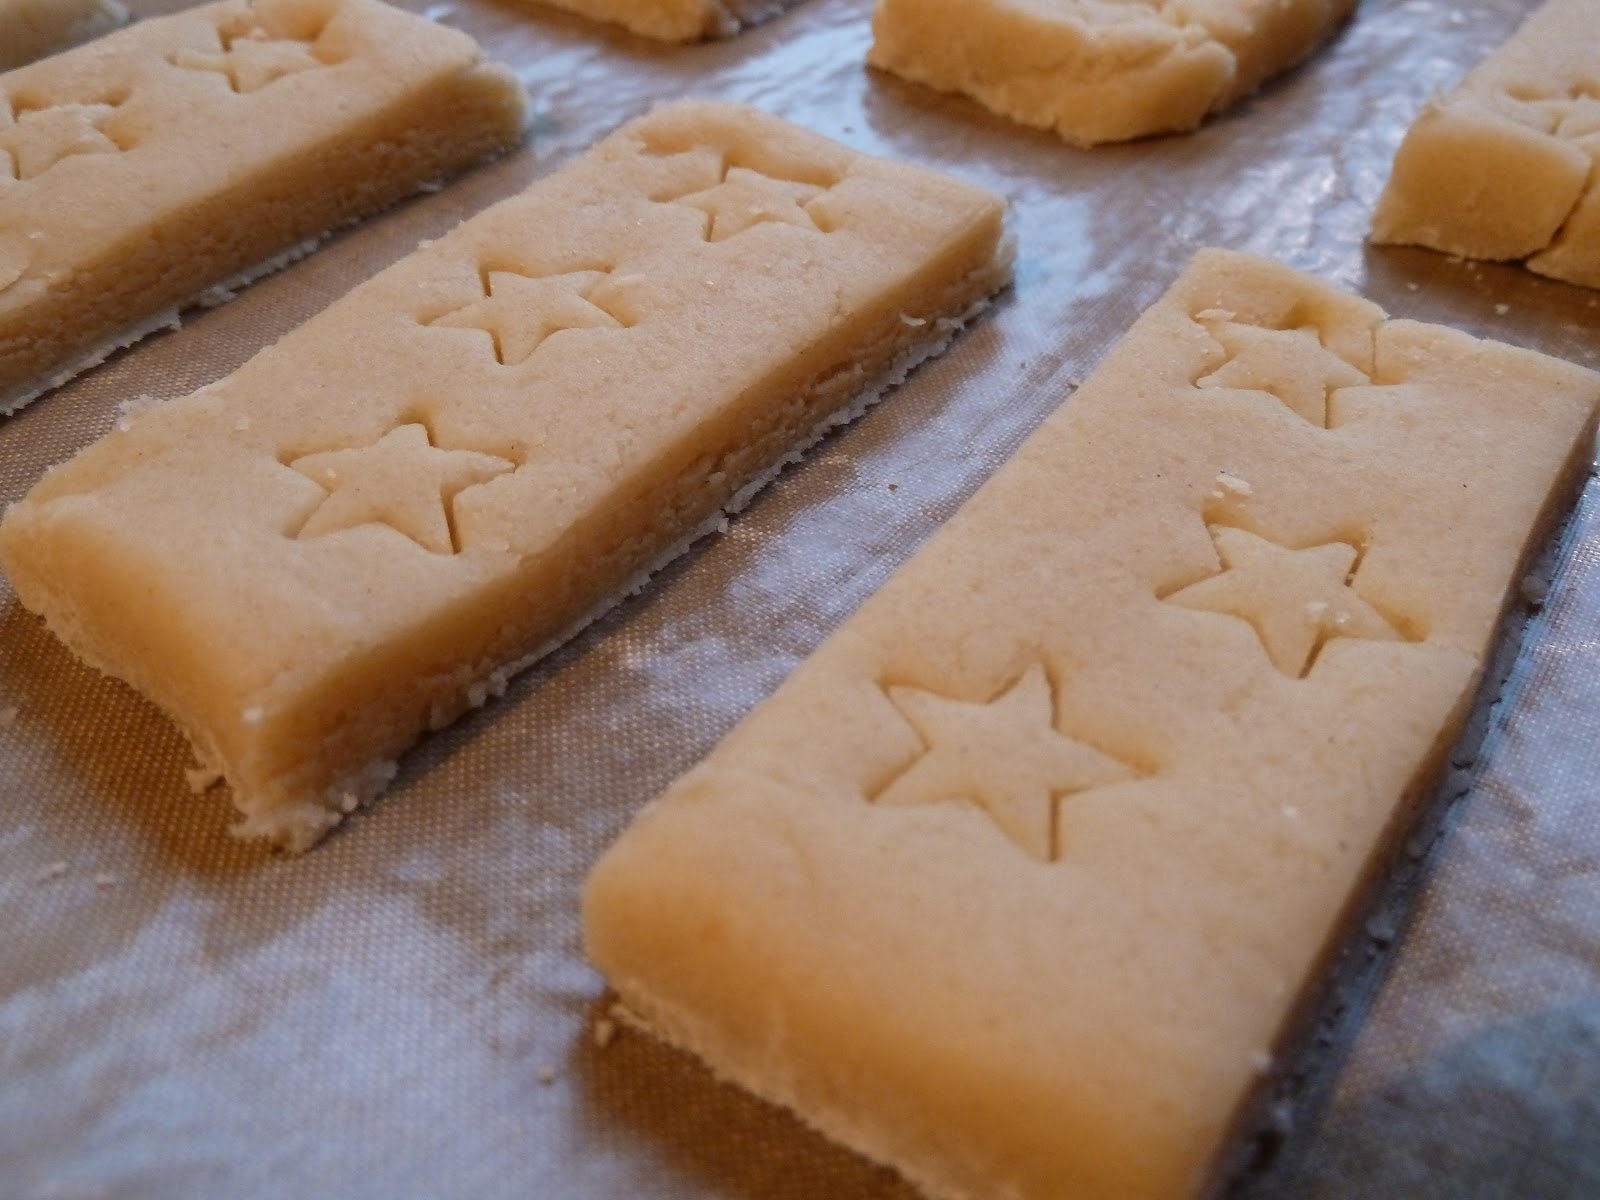 Starry shortbread